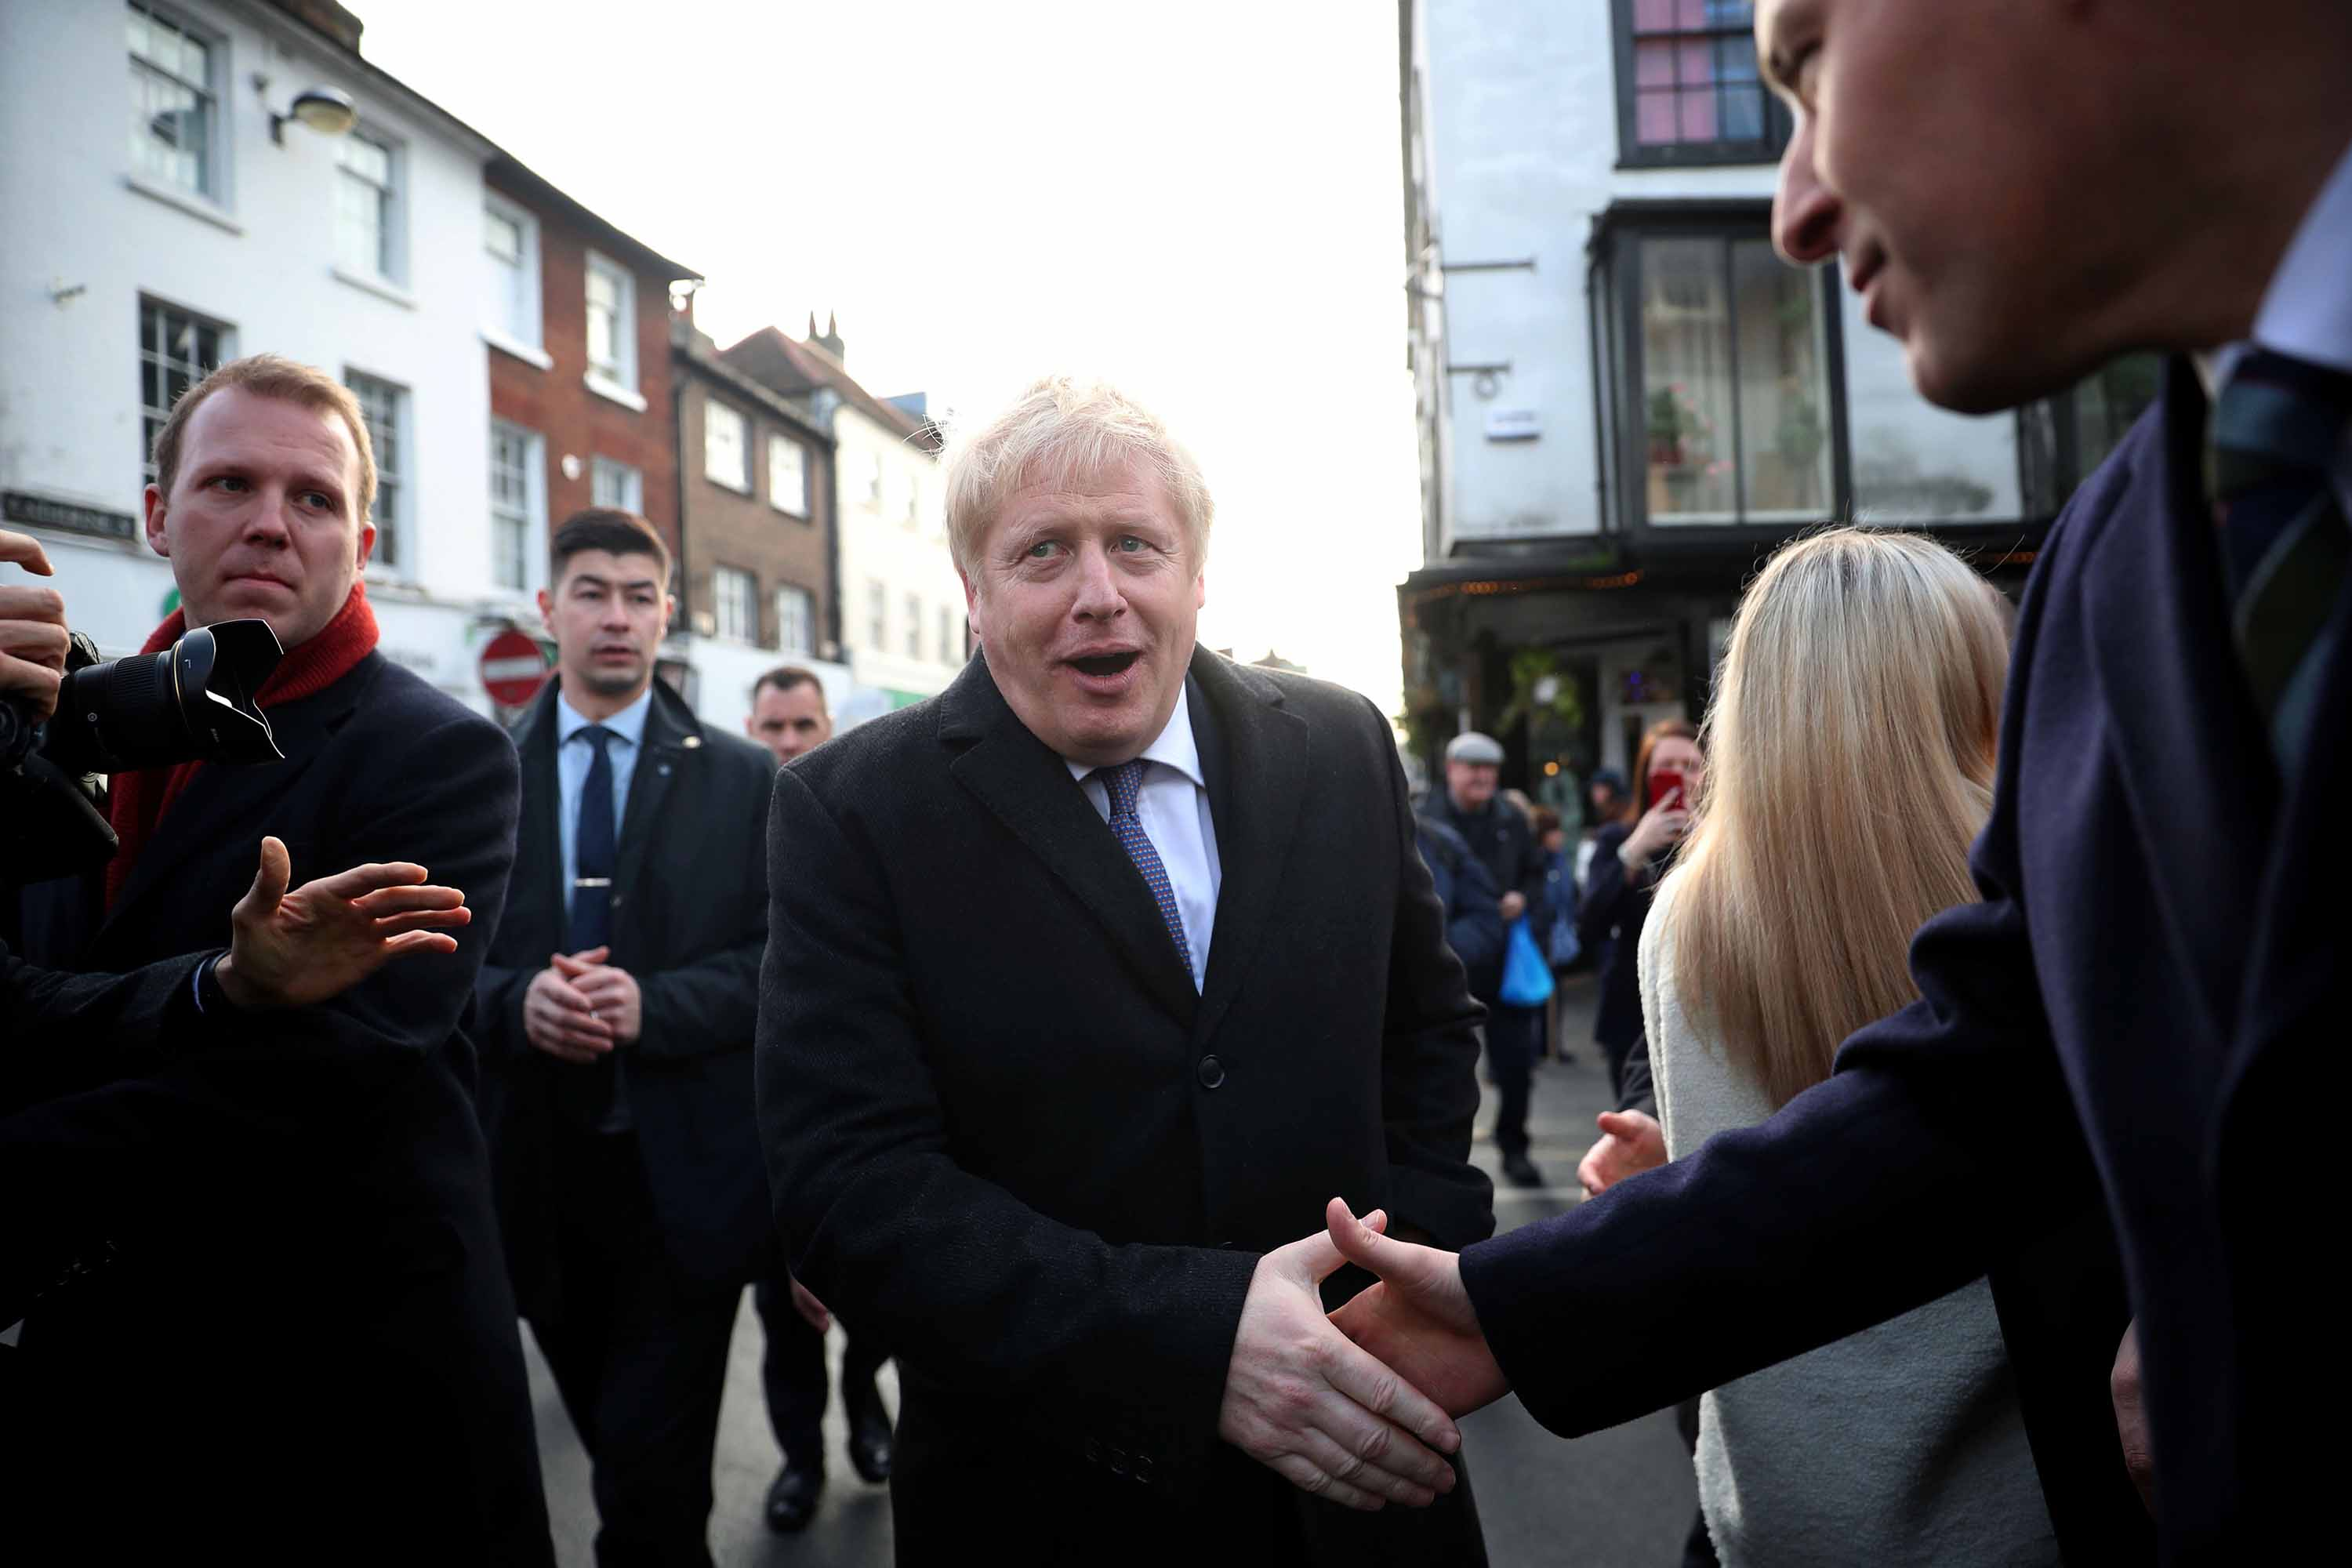 Boris Johnson greets people as he visits a Christmas market during a campaign event in Salisbury, England on Tuesday. Photo: Hannah McKay/AFP via Getty Images